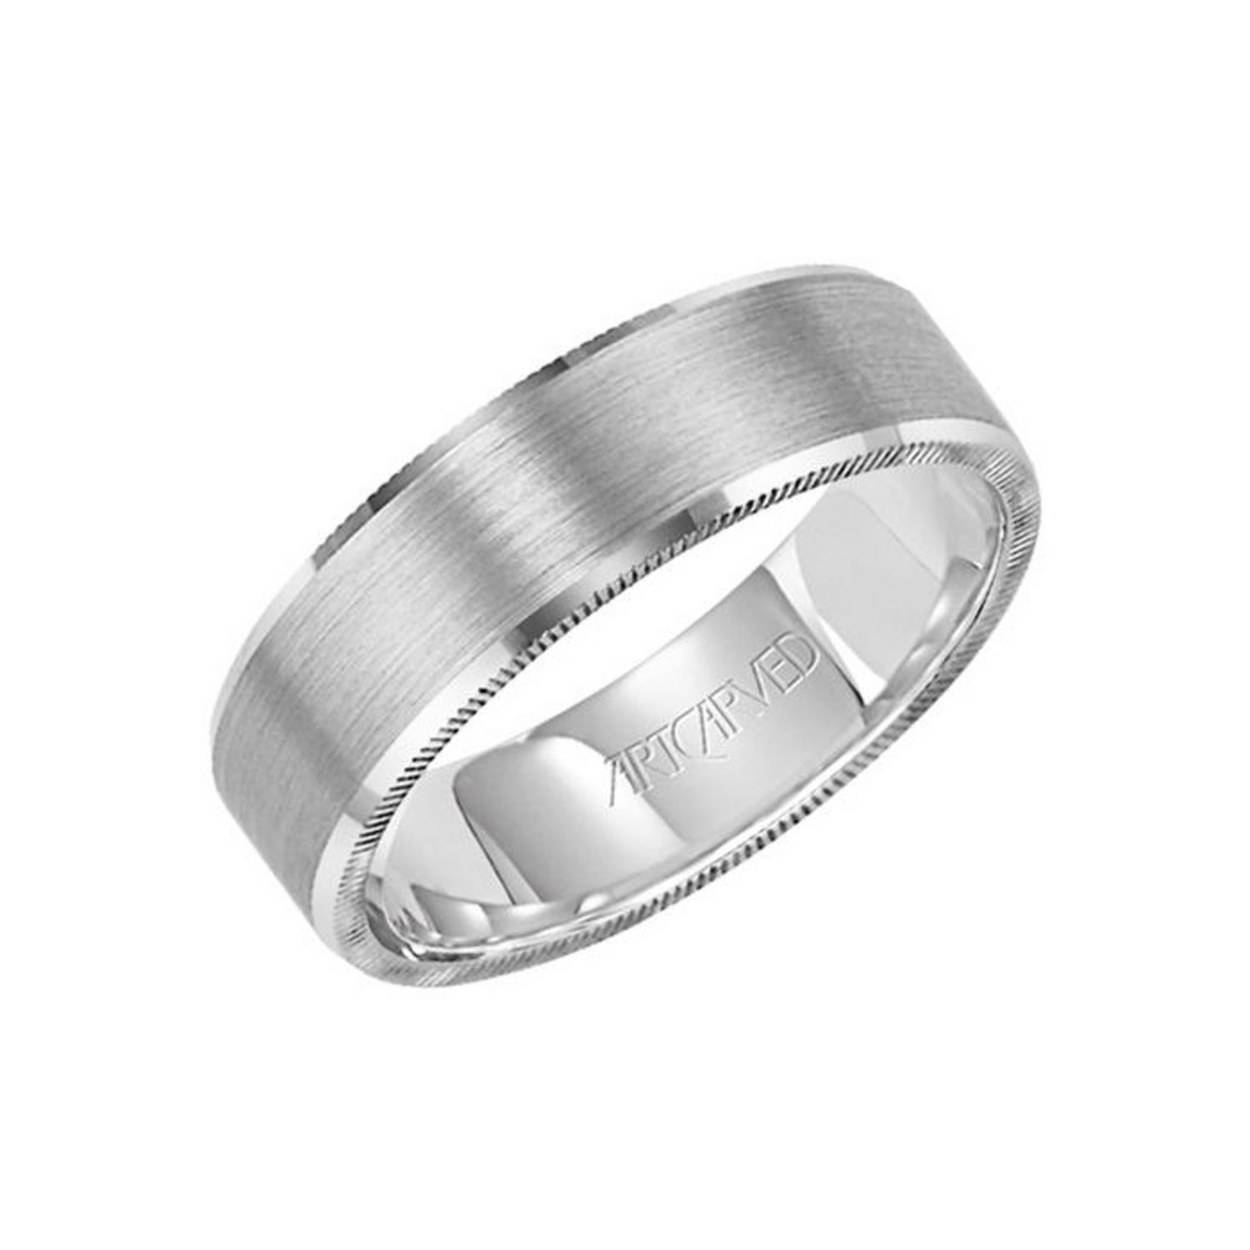 15 Men's Wedding Bands Your Groom Won't Want To Take Off | Glamour Pertaining To Manly Wedding Bands (View 2 of 15)